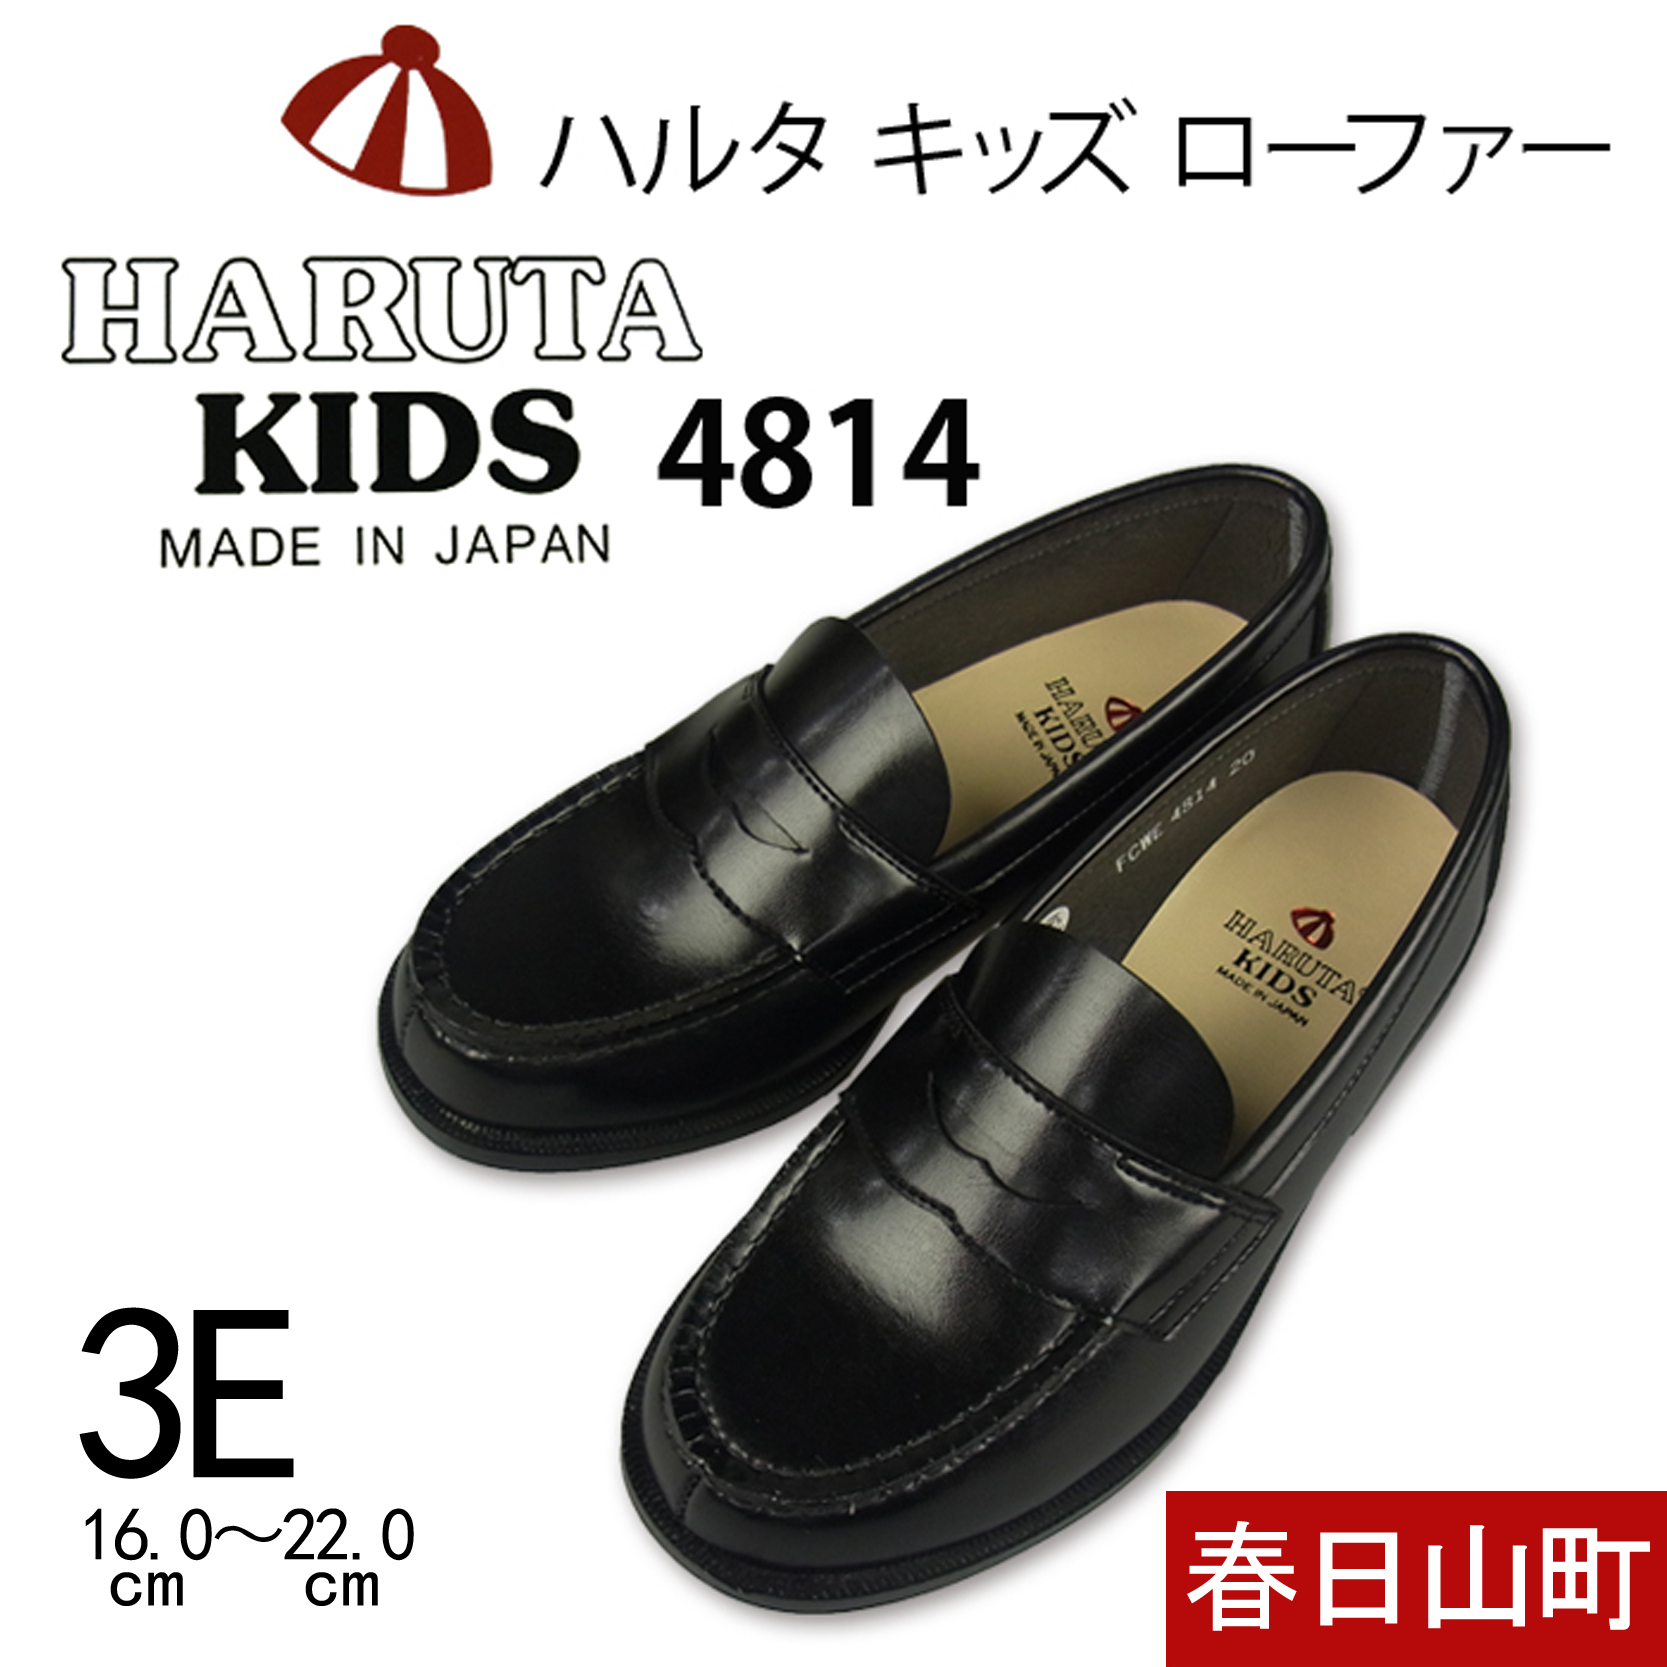 ff96c612713 Japan Purchasing haruta4814 children s uniform shoes Japanese small shoes  cosplay loafers shoes